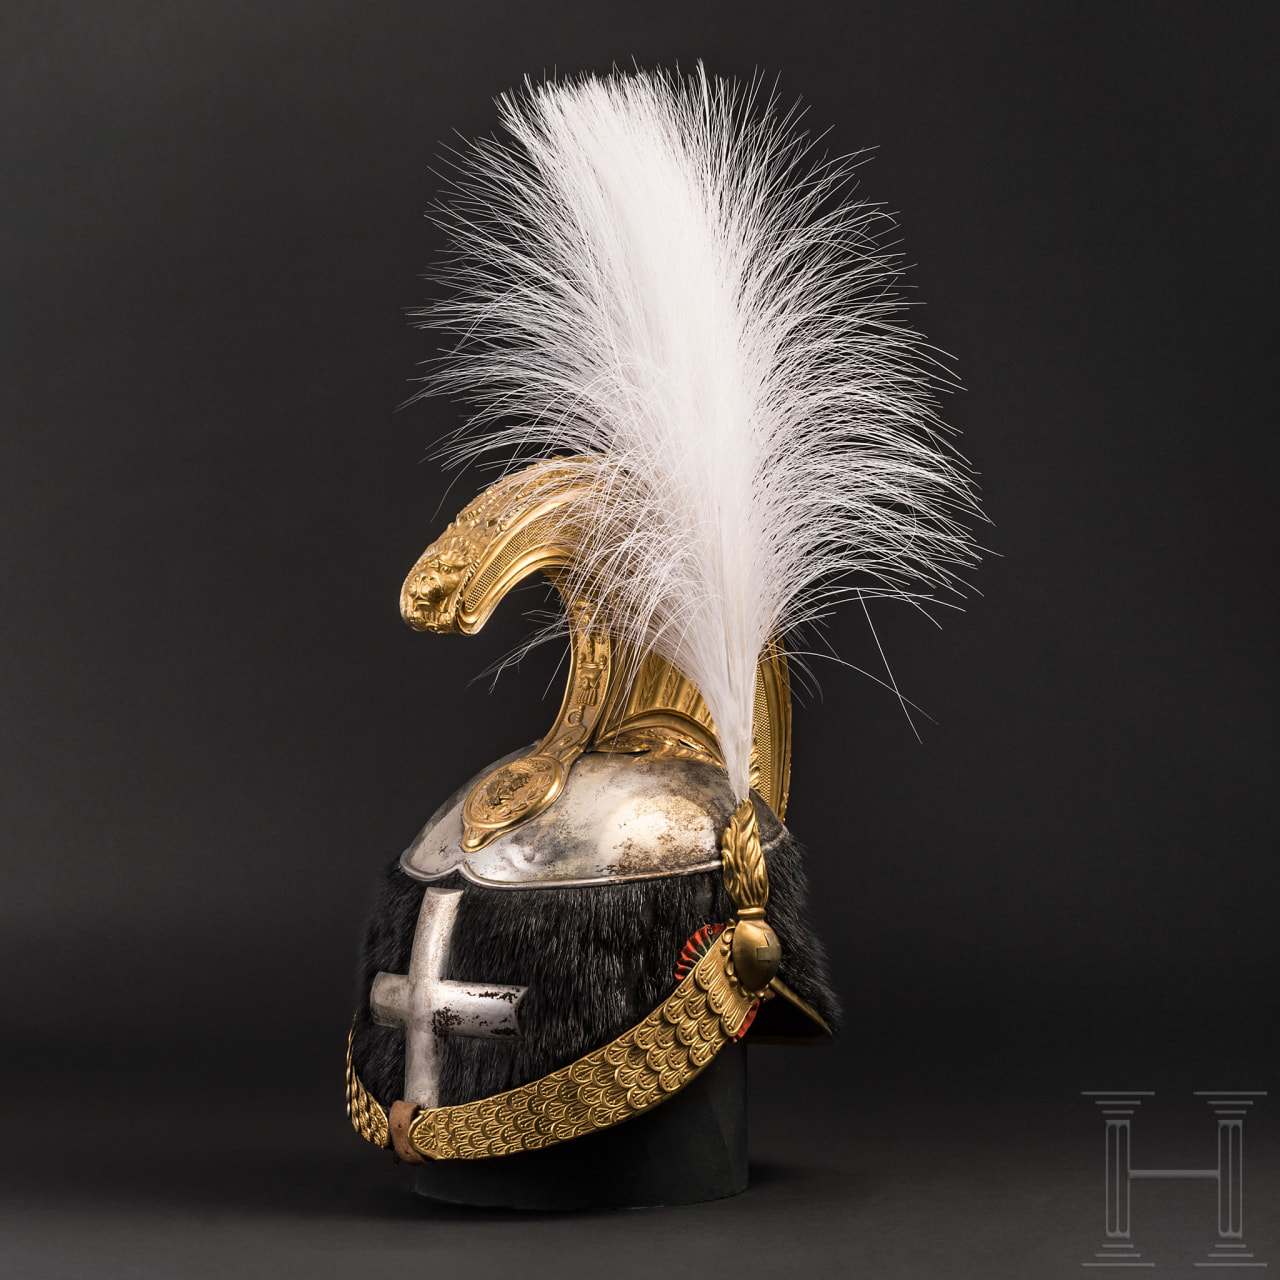 A helmet M 1880 for regiment commanders of the heavy cavalry, 1900-46